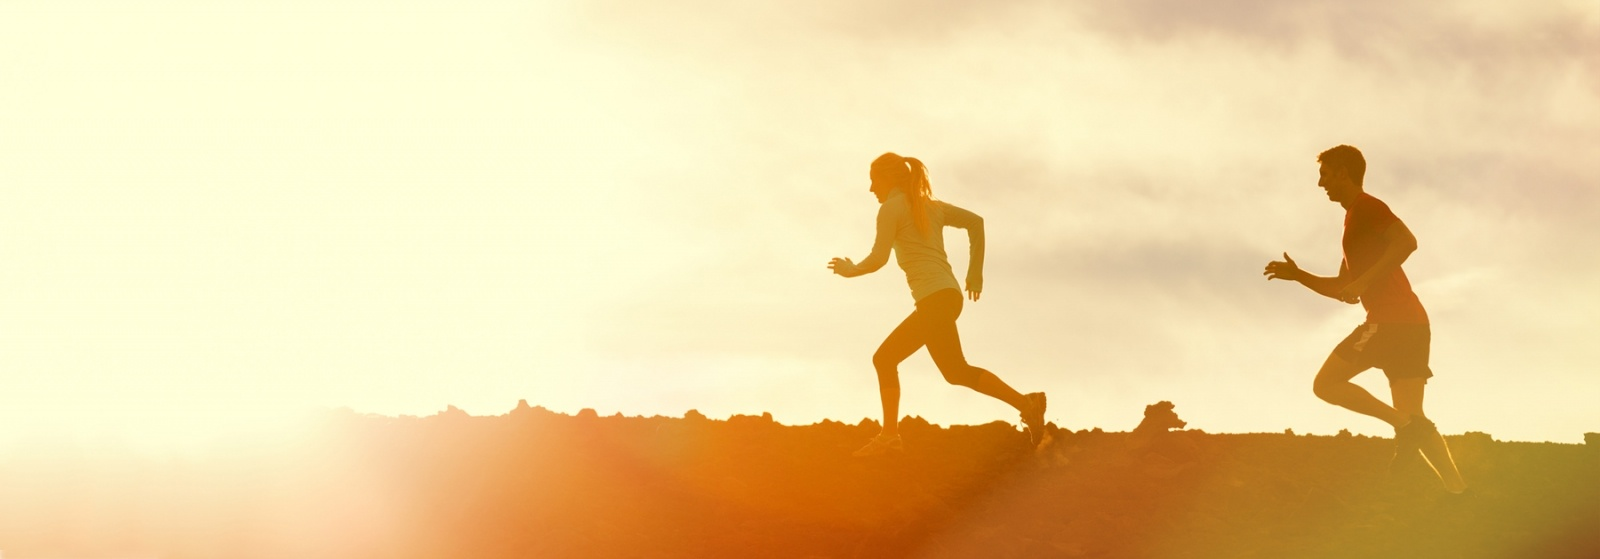 Person running on a hill top